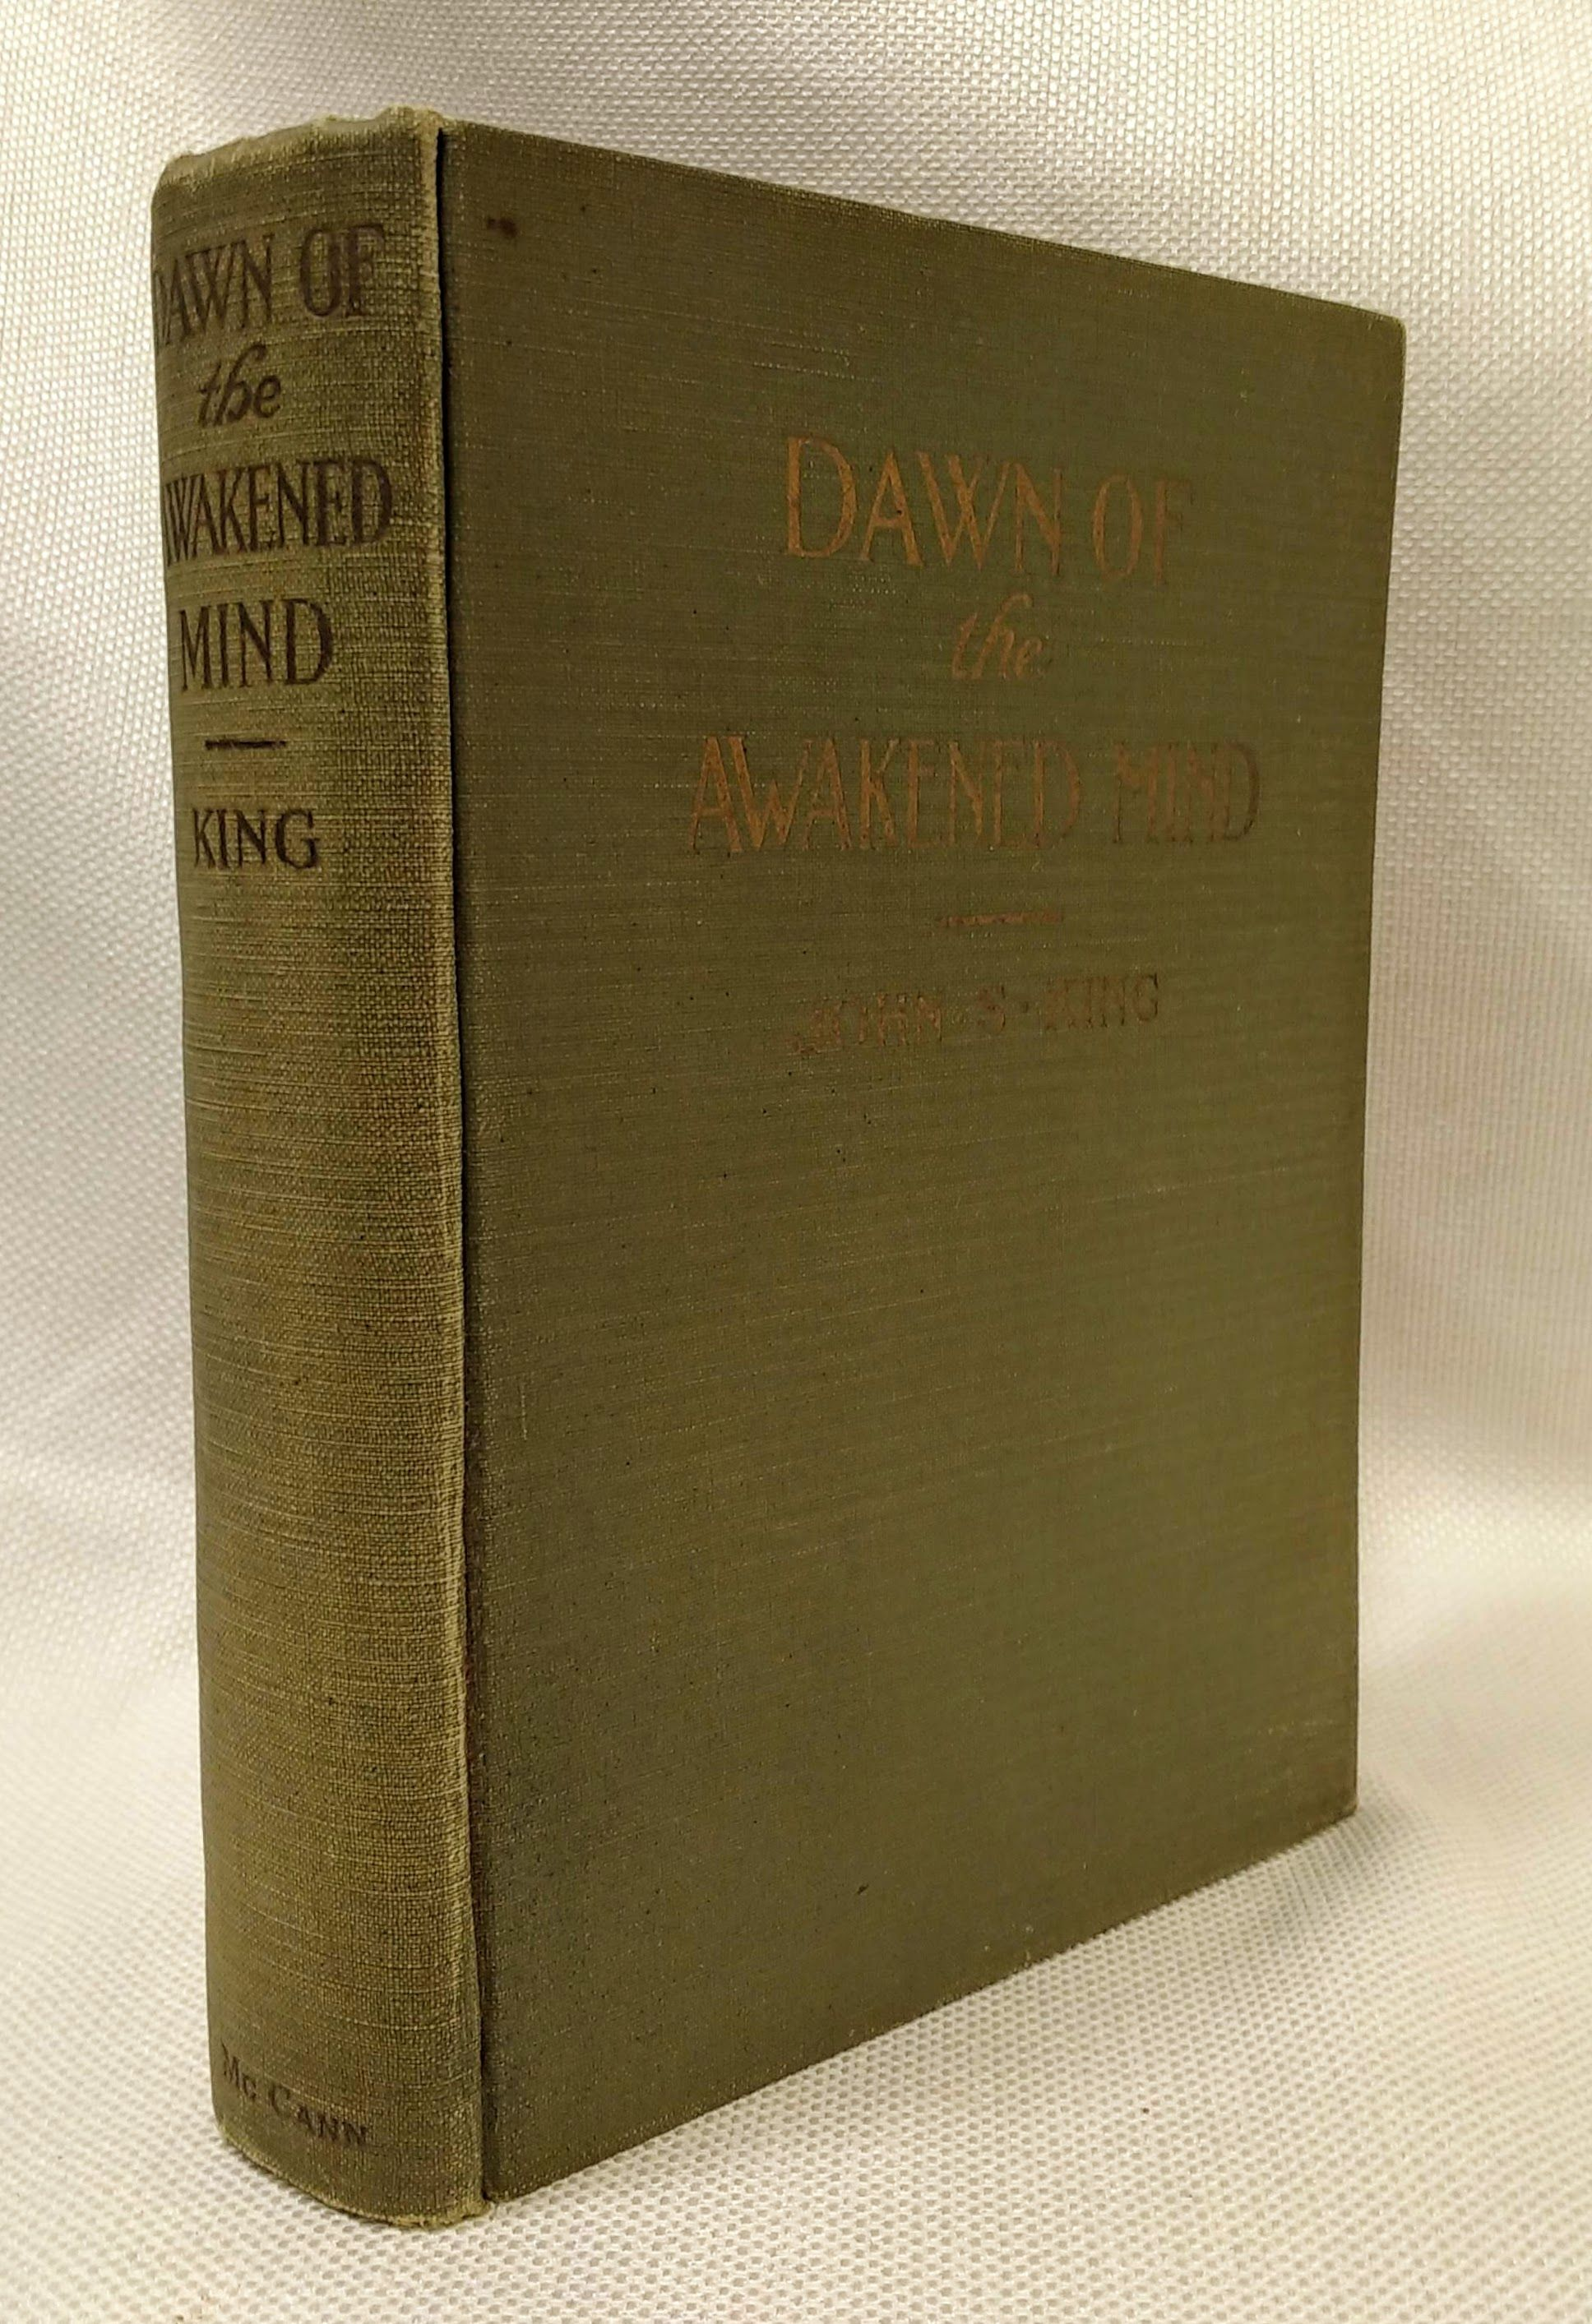 Dawn of the Awakened Mind [Story of the Canadian Society for Psychical Resarch], King, John S. (president)